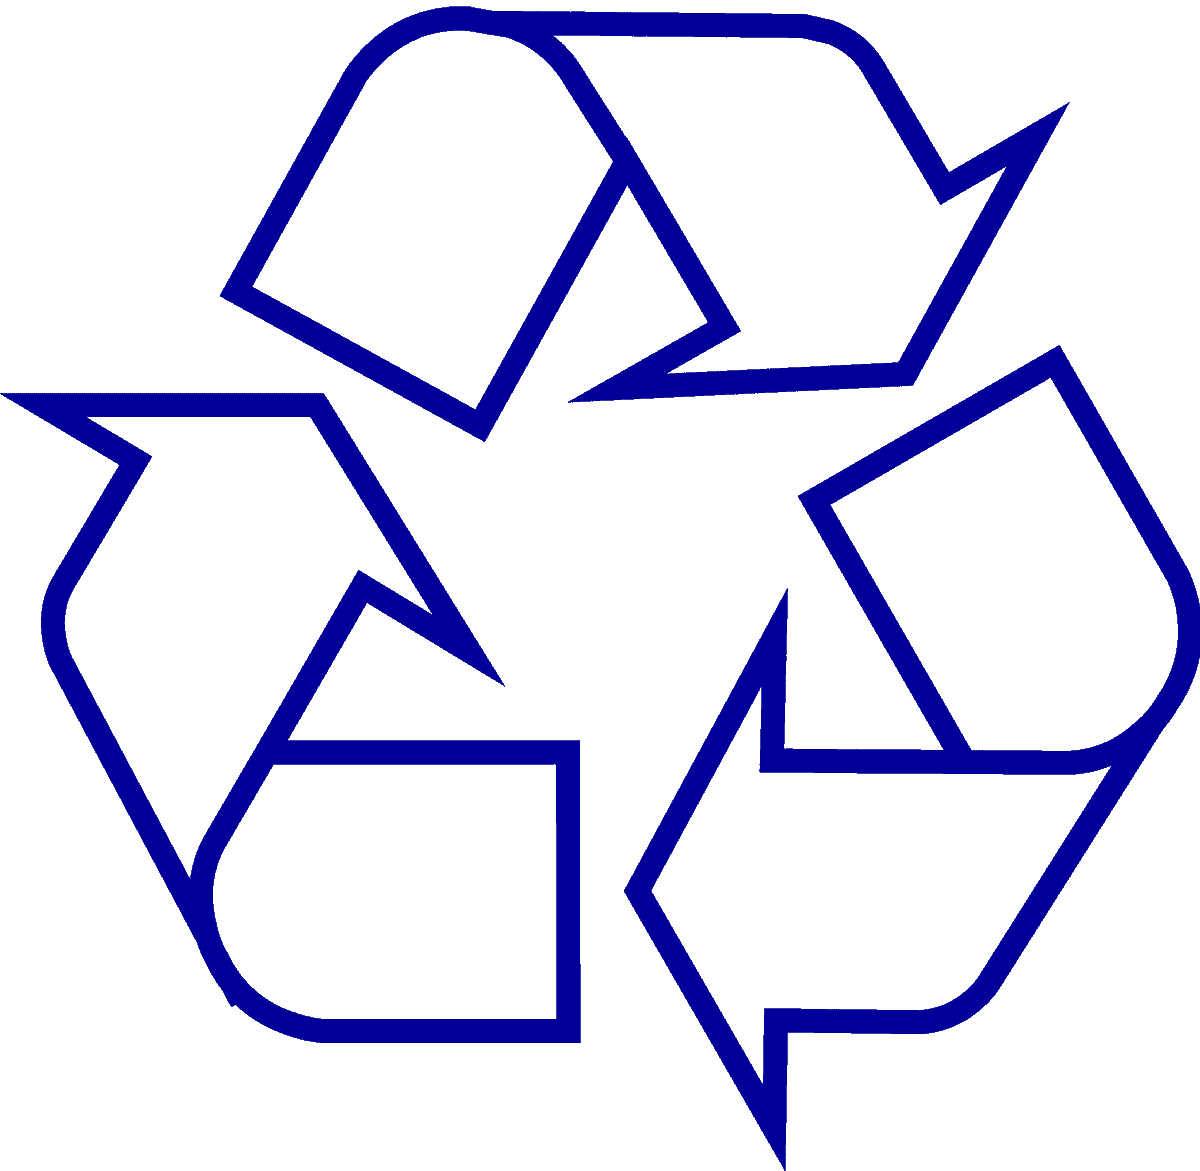 recycling-symbol-icon-outline-dark-blue